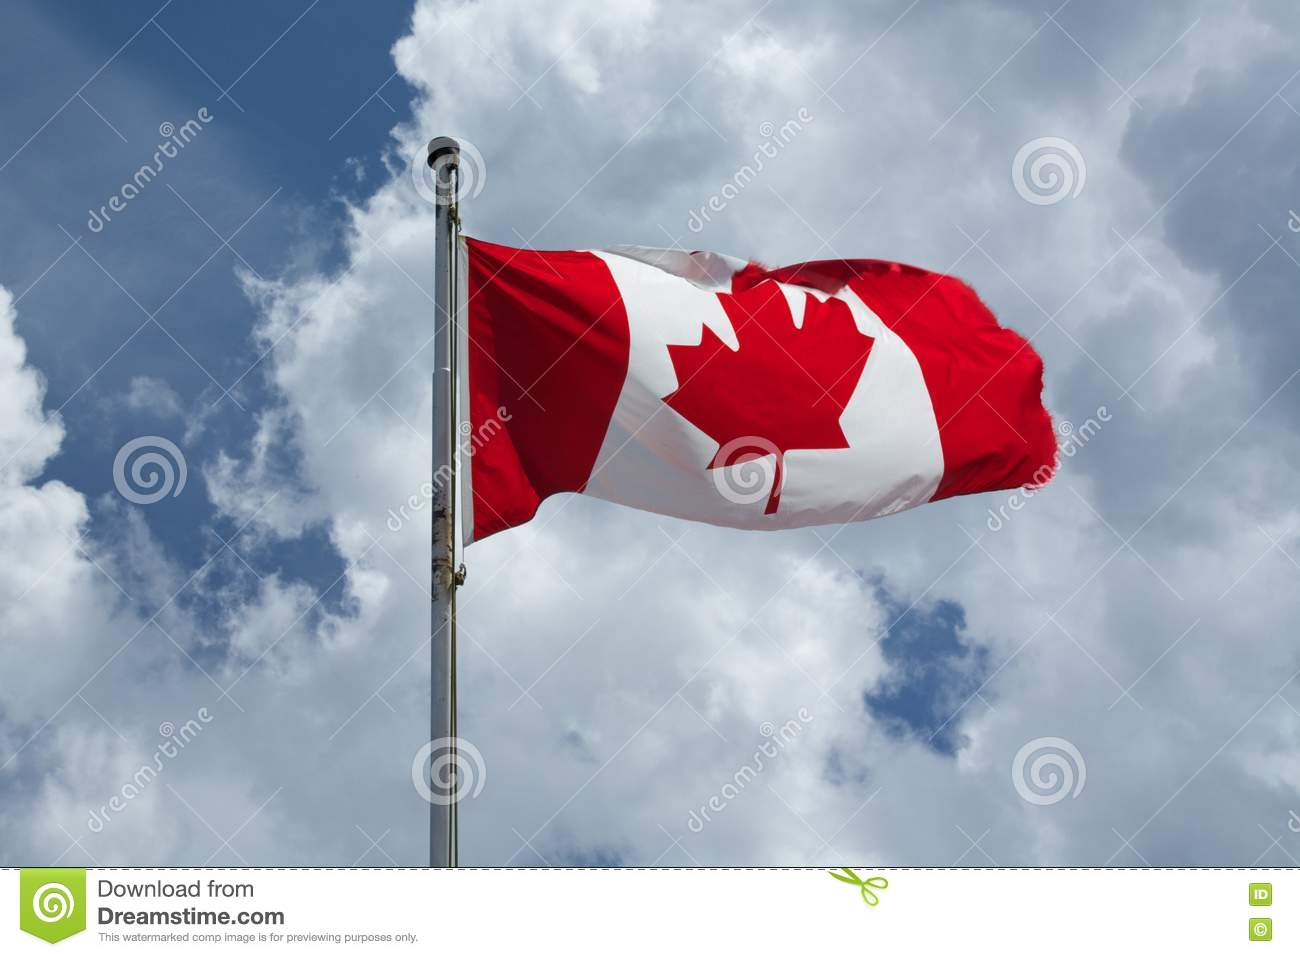 Canadian Flag flies proudly against a blue cloudy sky